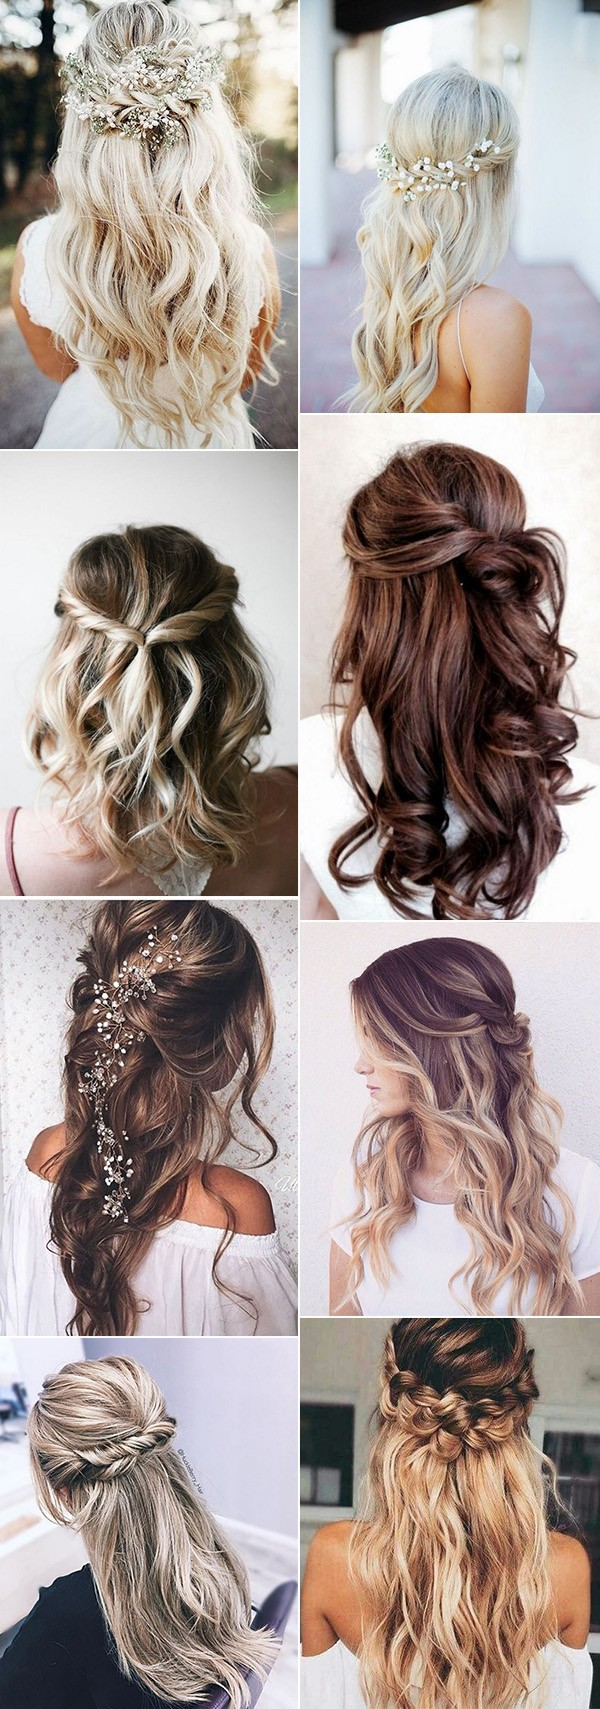 half up half down wedding hairstyles for 2018 and 2019